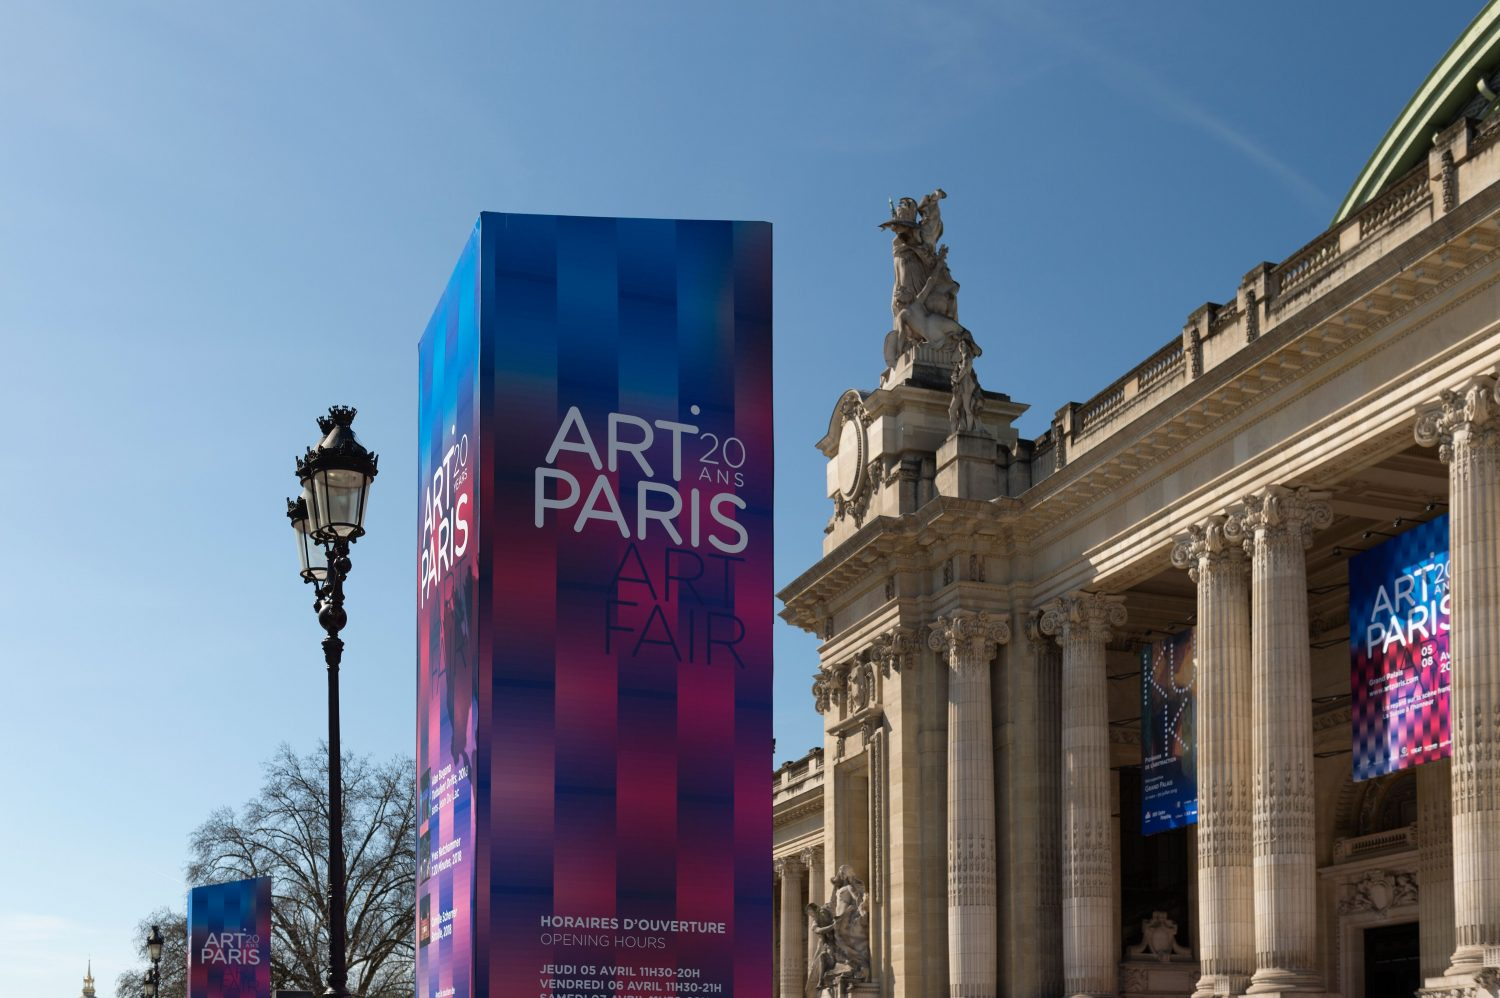 art paris 2019 event guide ART PARIS 2019 EVENT GUIDE art paris2